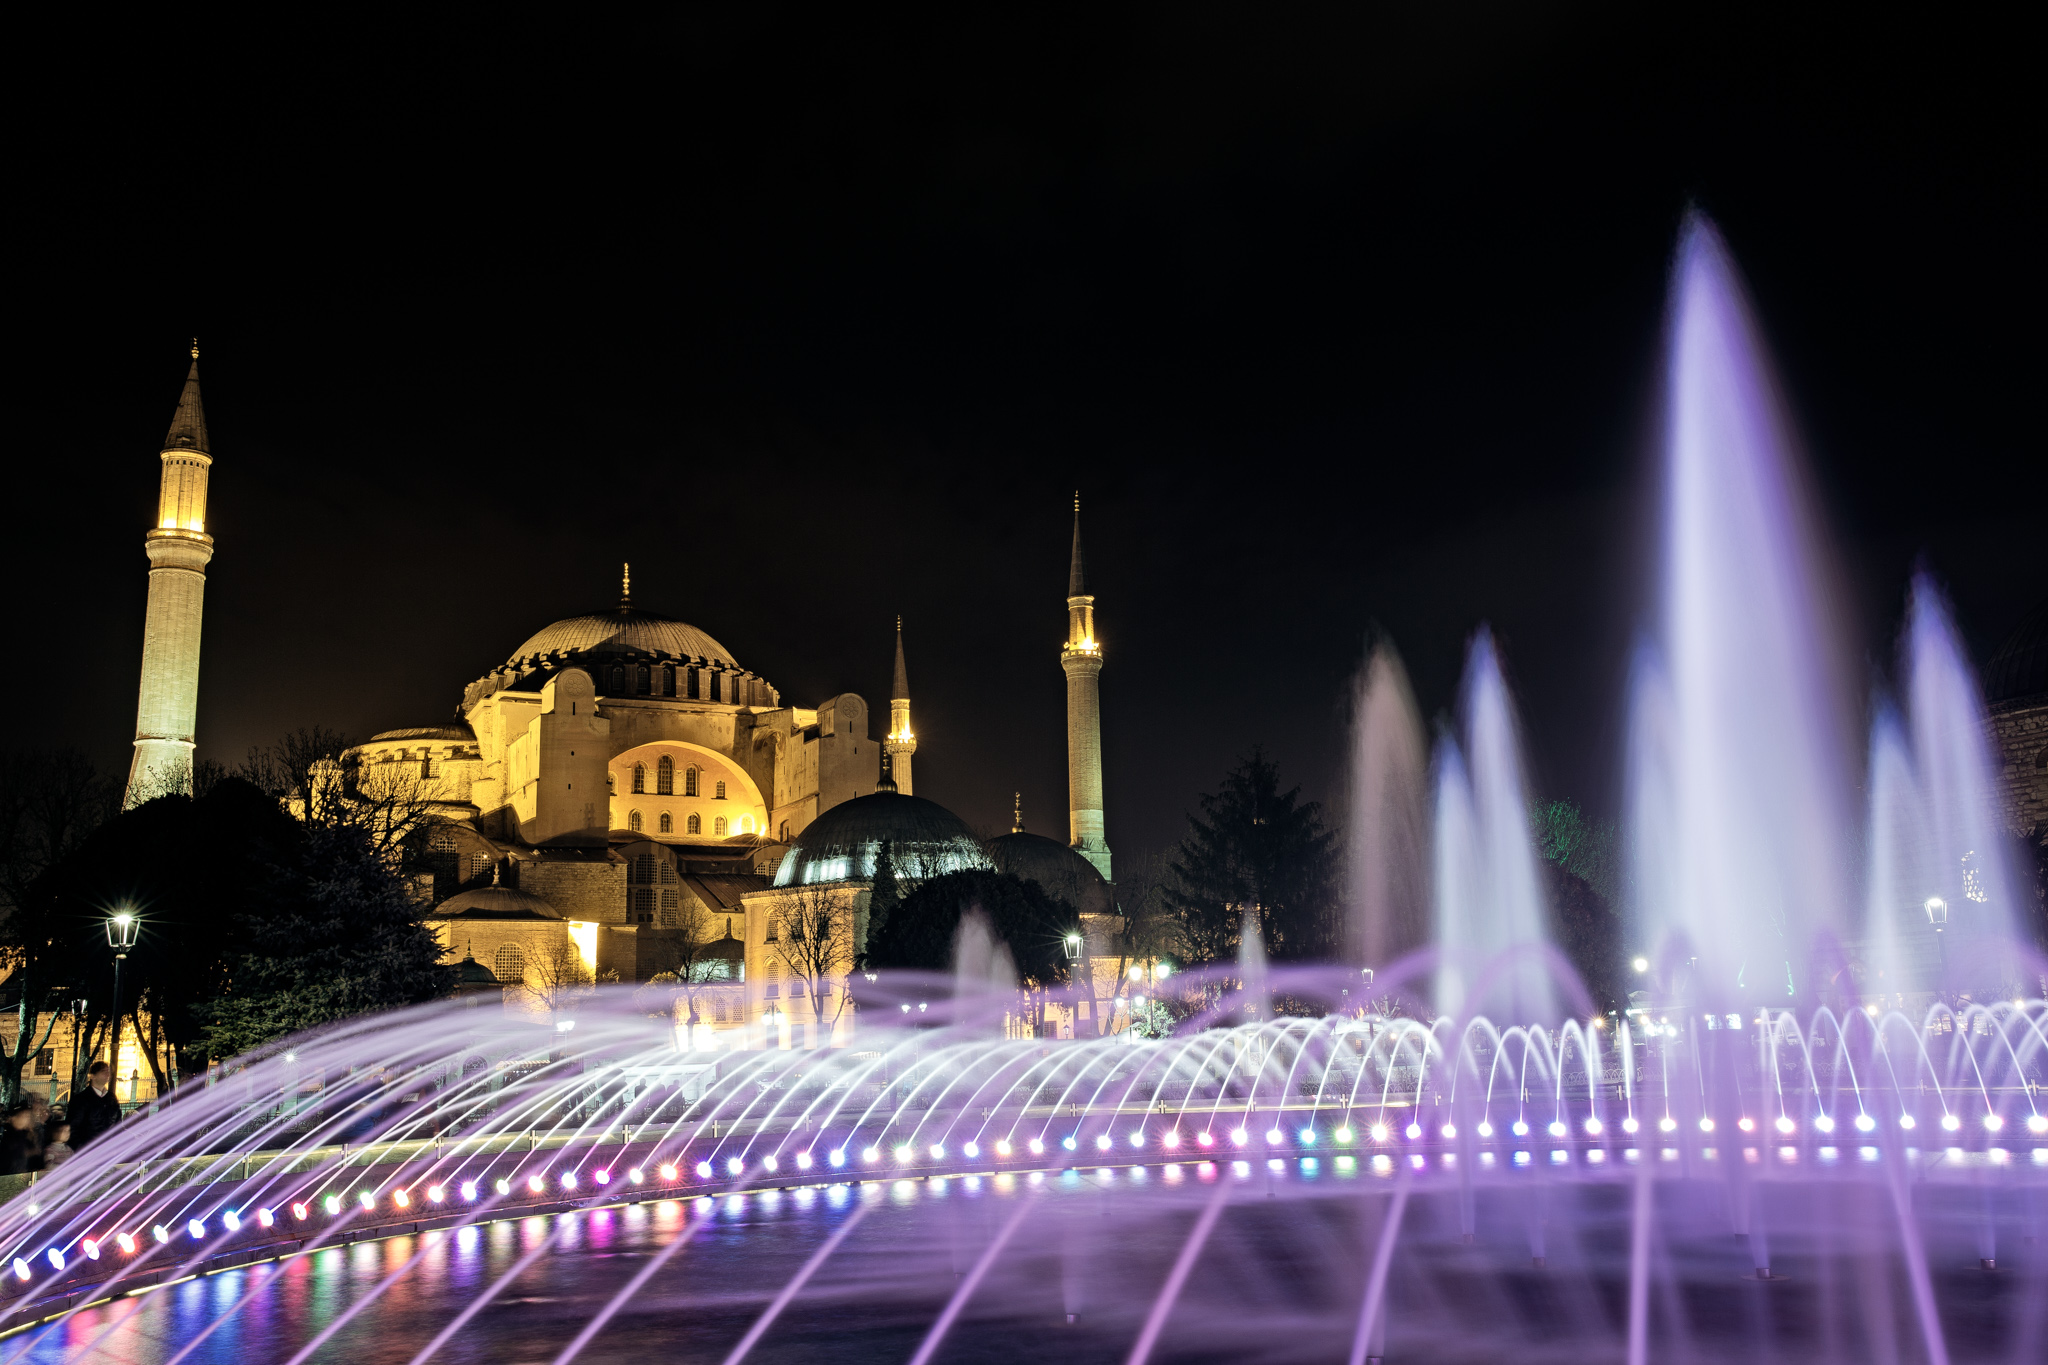 istanbul_ayasofya_outside-1408-behind-fountain-pink-nightshot.jpg